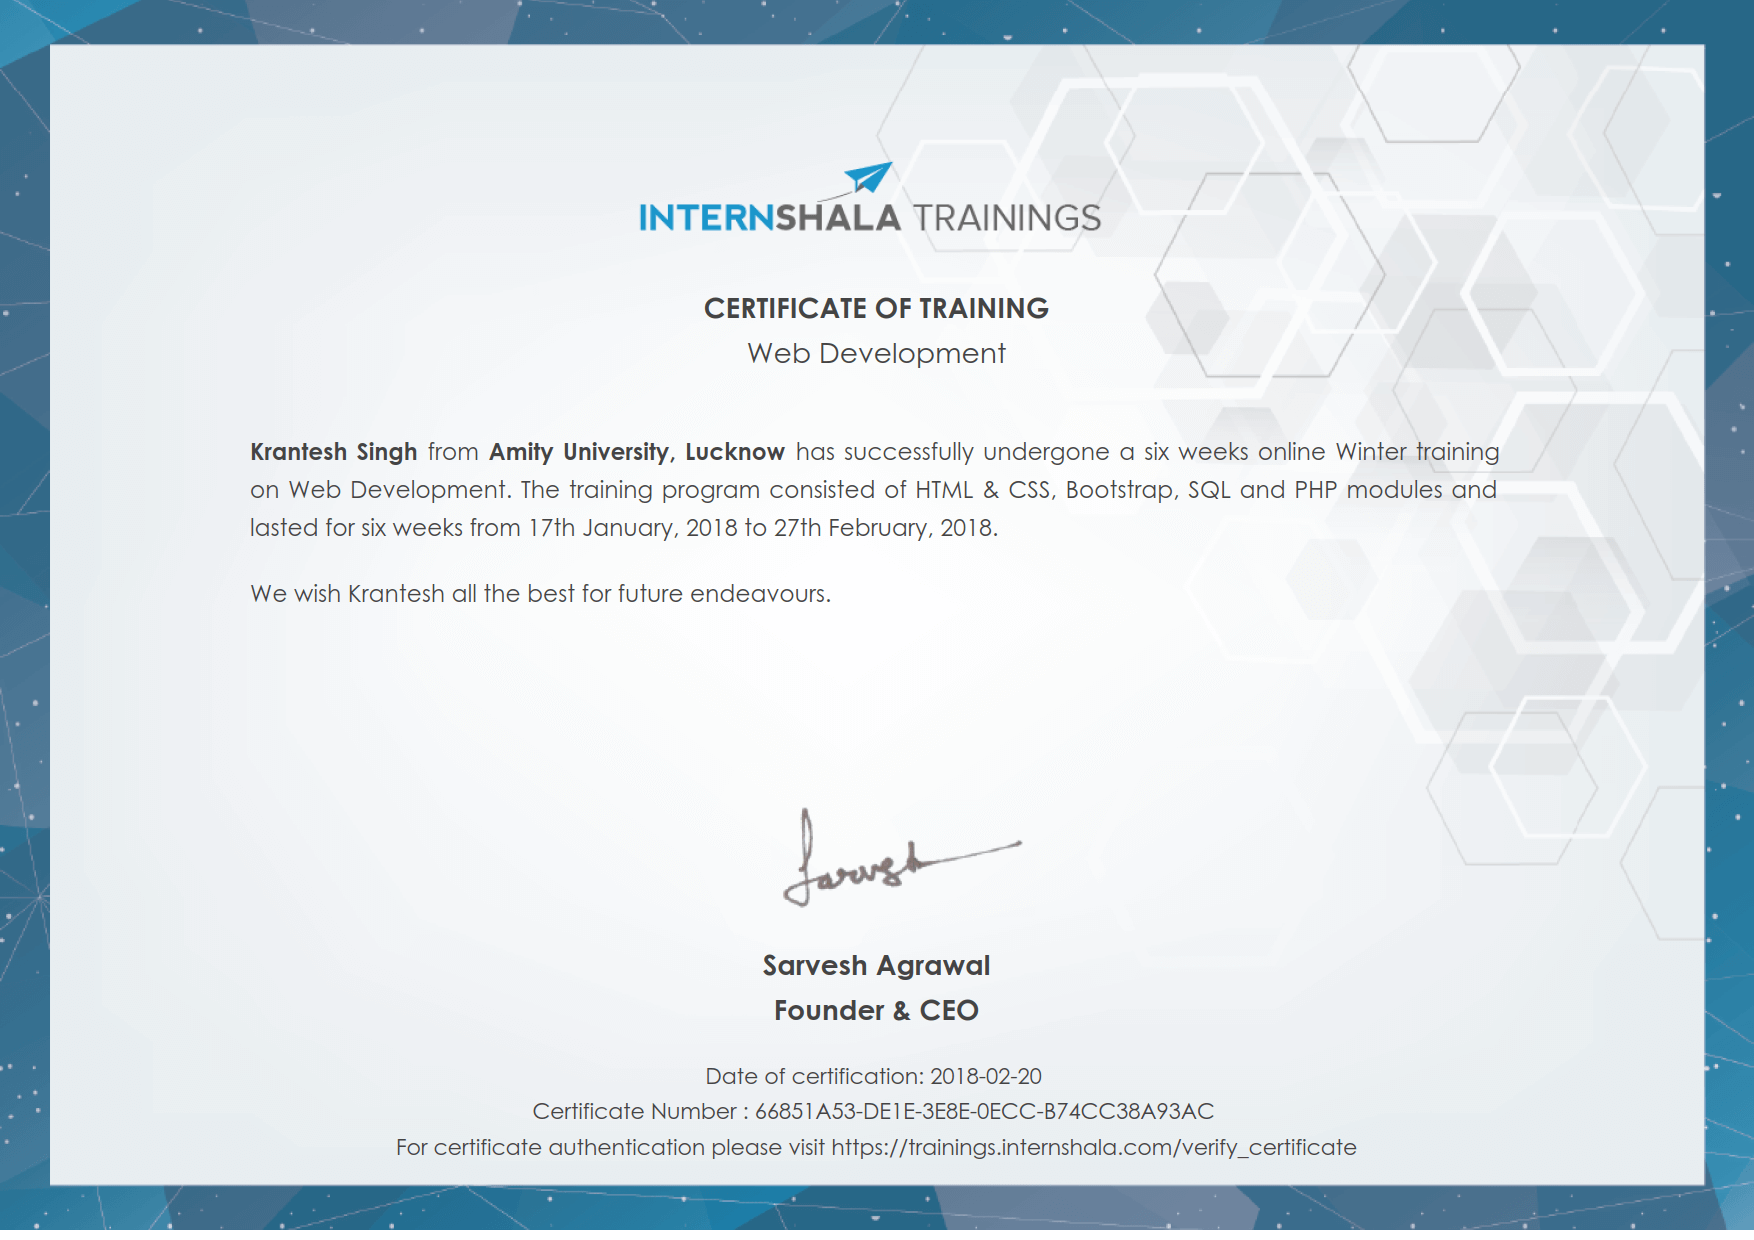 Web Development Training Certificate